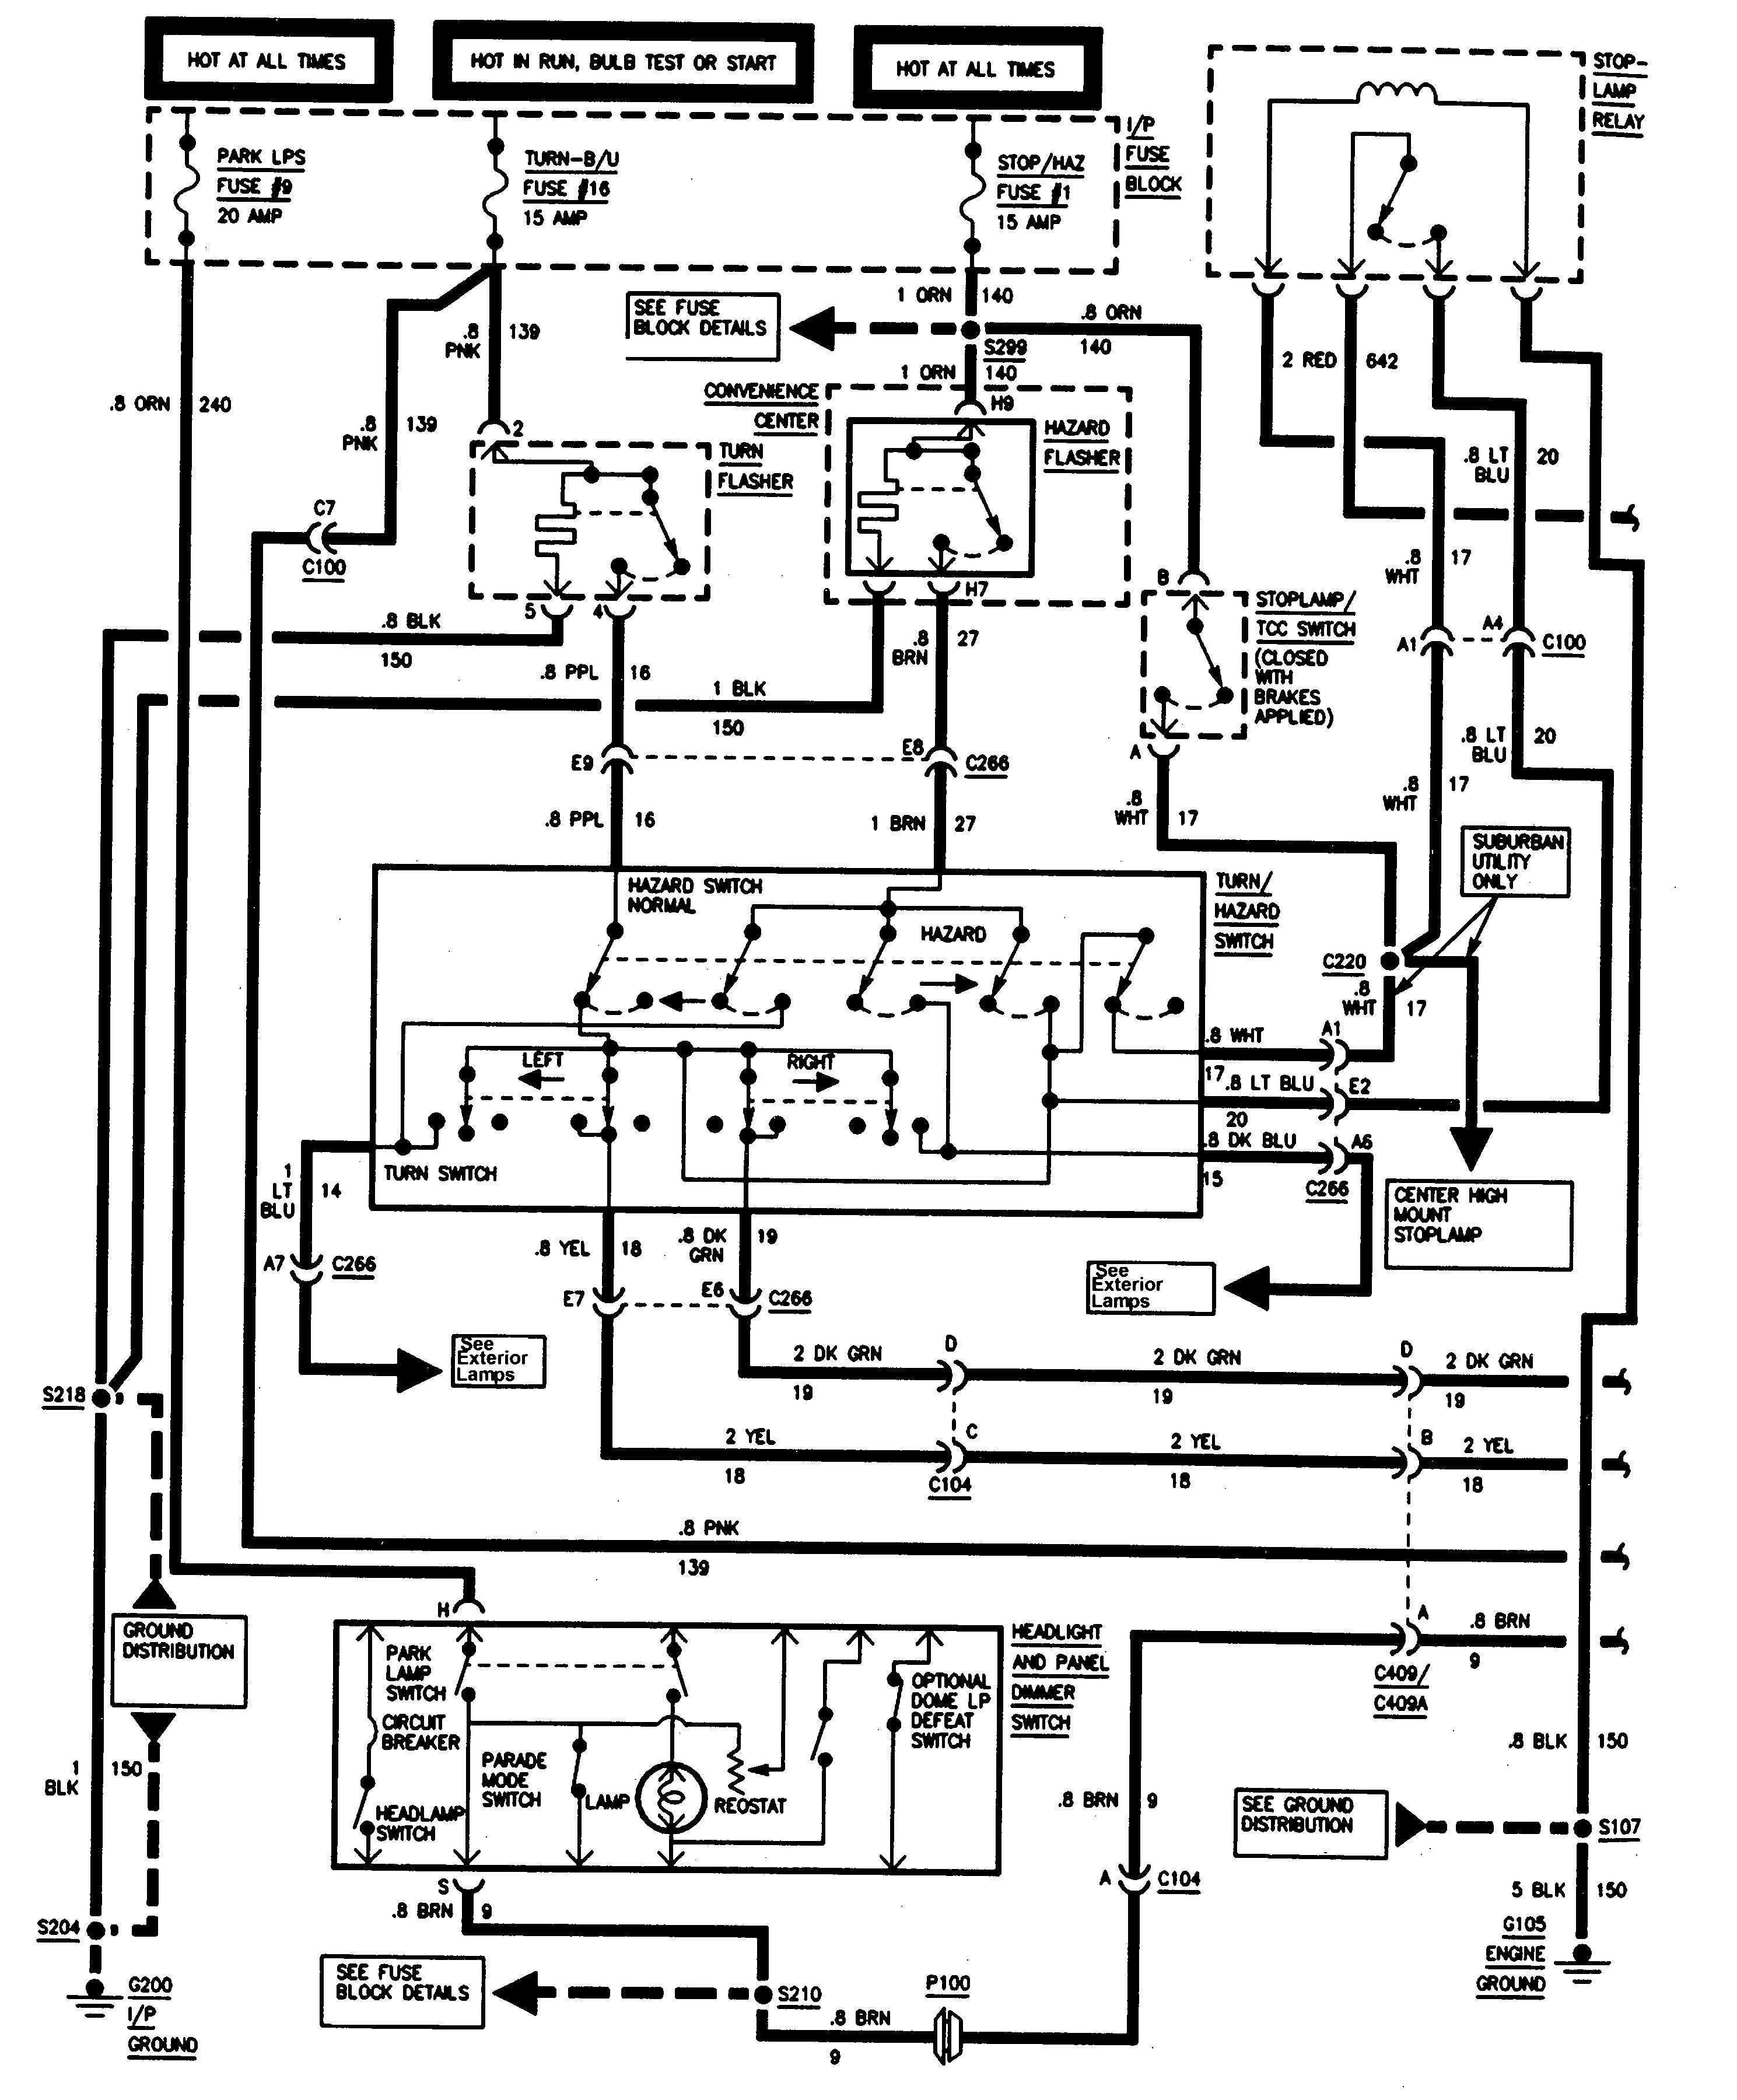 Factory Installed Wiring Schematic for A 2004 Gmc Trailer Diagram] 7 Wire Trailer Wiring Diagram Gmc Full Version Hd